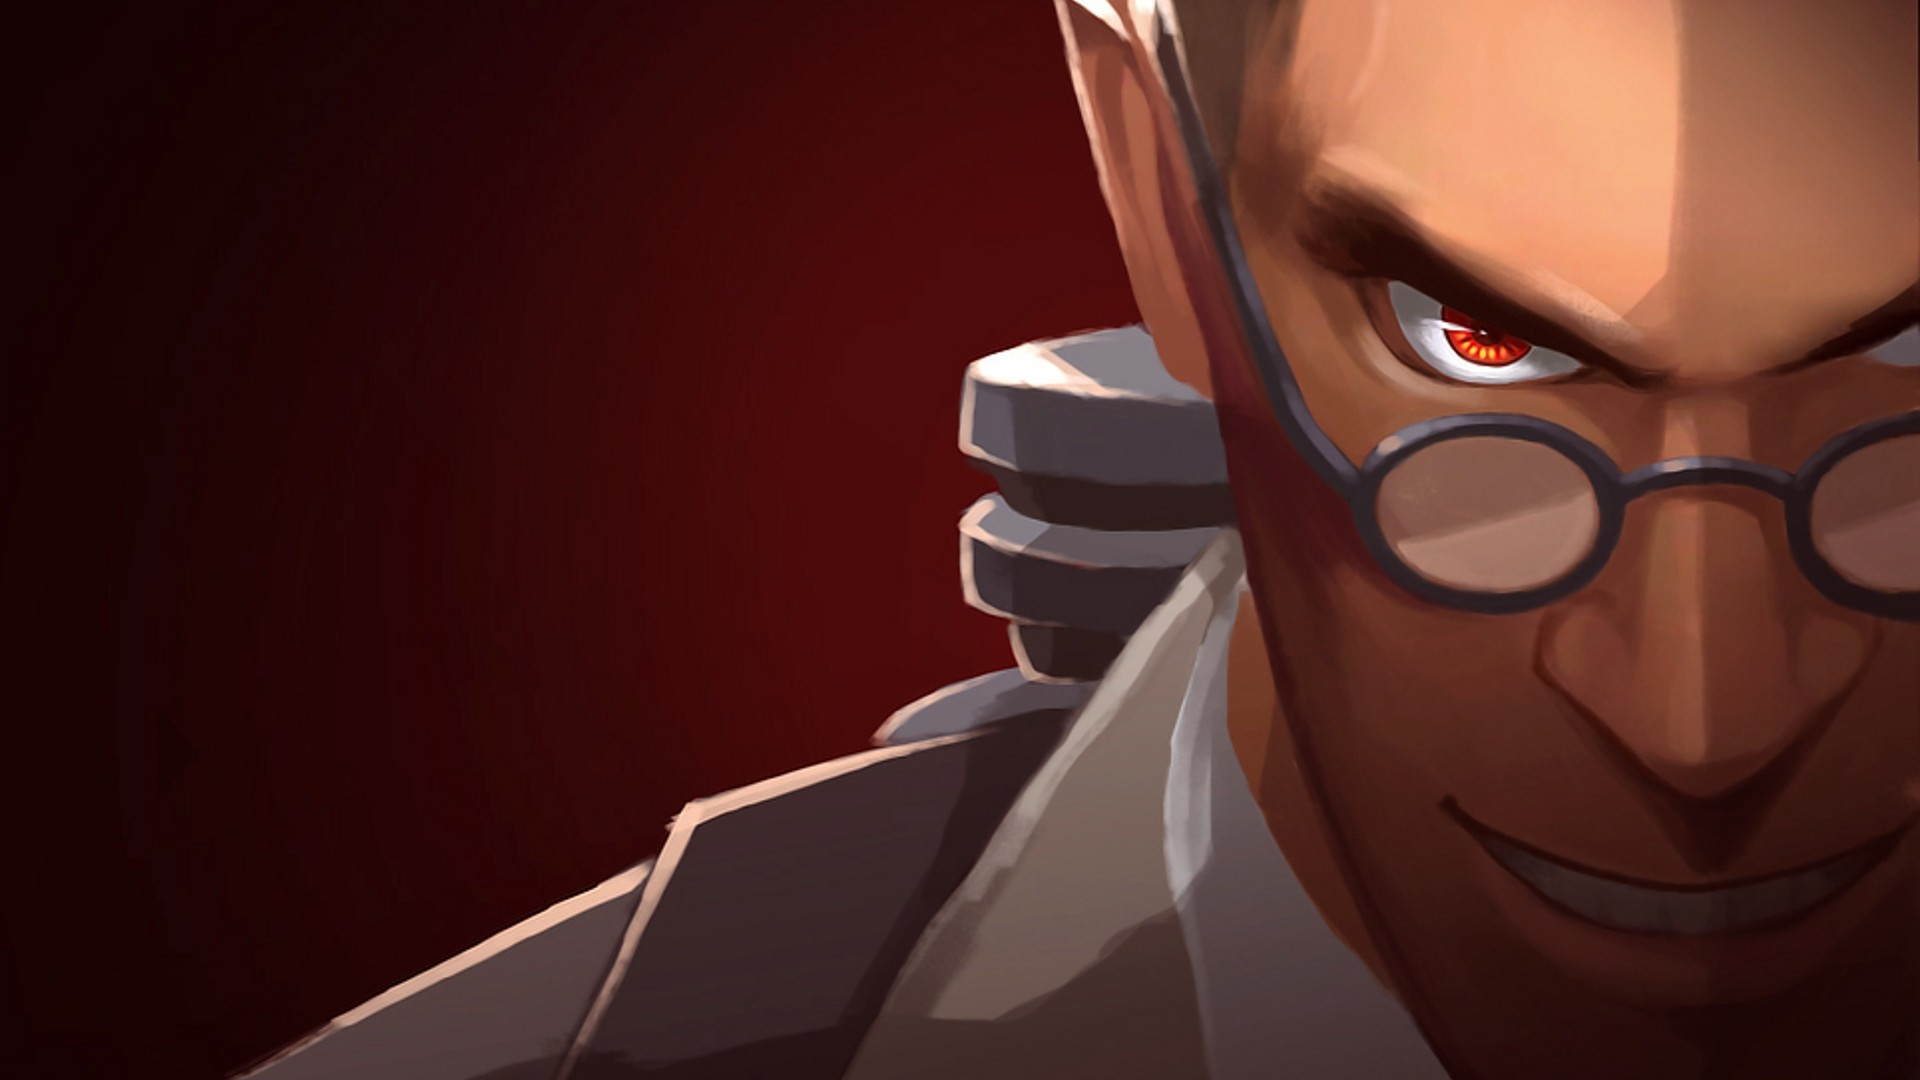 1920x1080 Team Fortress 2(TF2) images TF2 Red Medic HD wallpaper and background photos